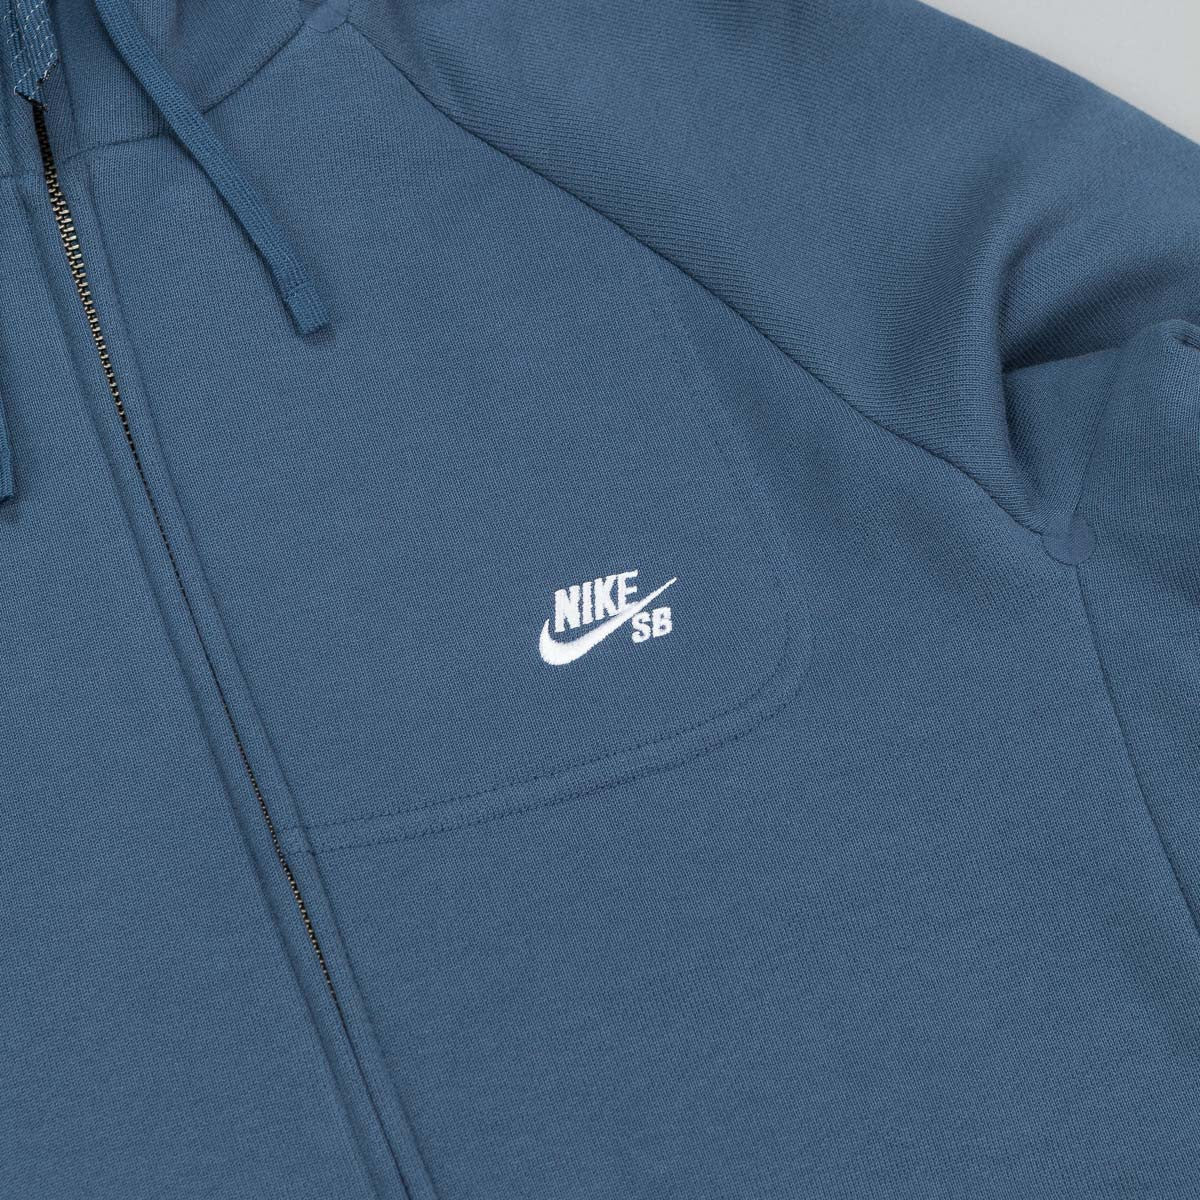 Nike SB Everett Graphic Zip Hooded Sweatshirt - Squadron Blue / White